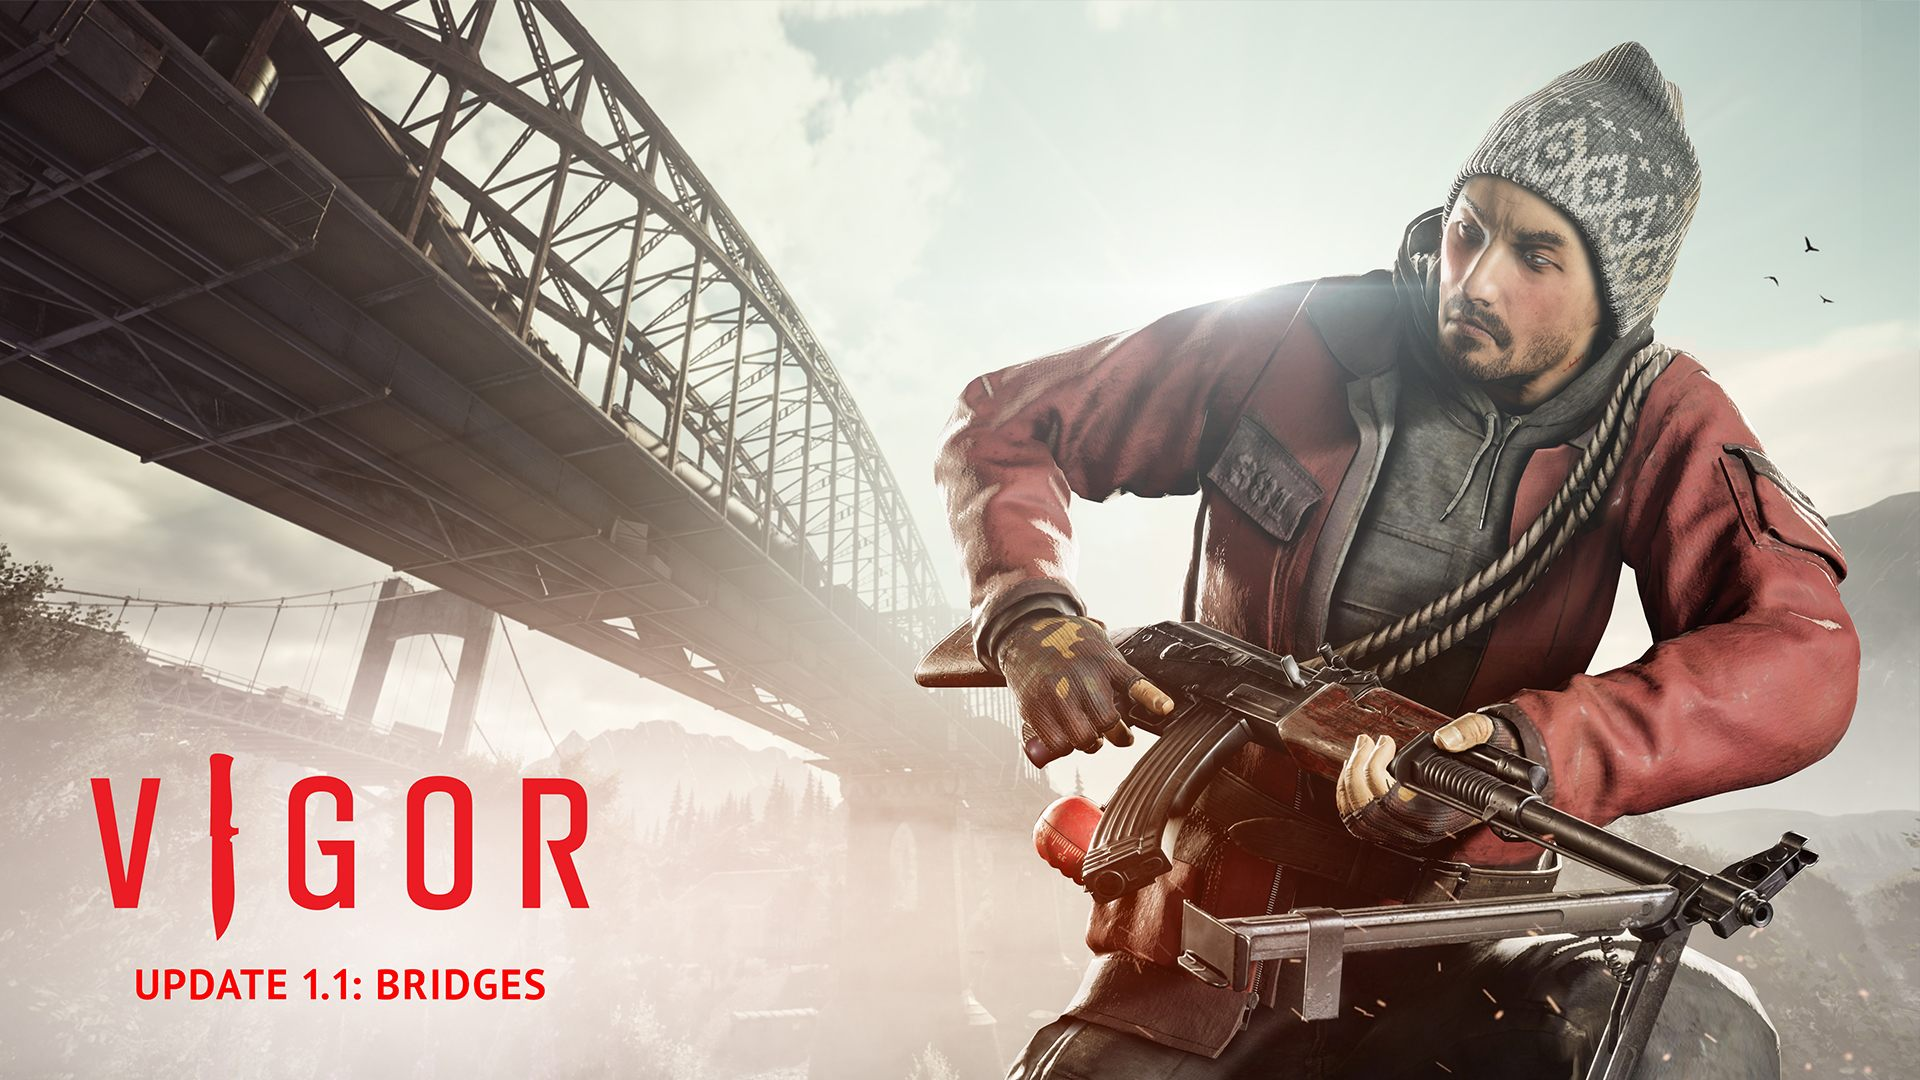 Vigor Update 1.1 Bridges